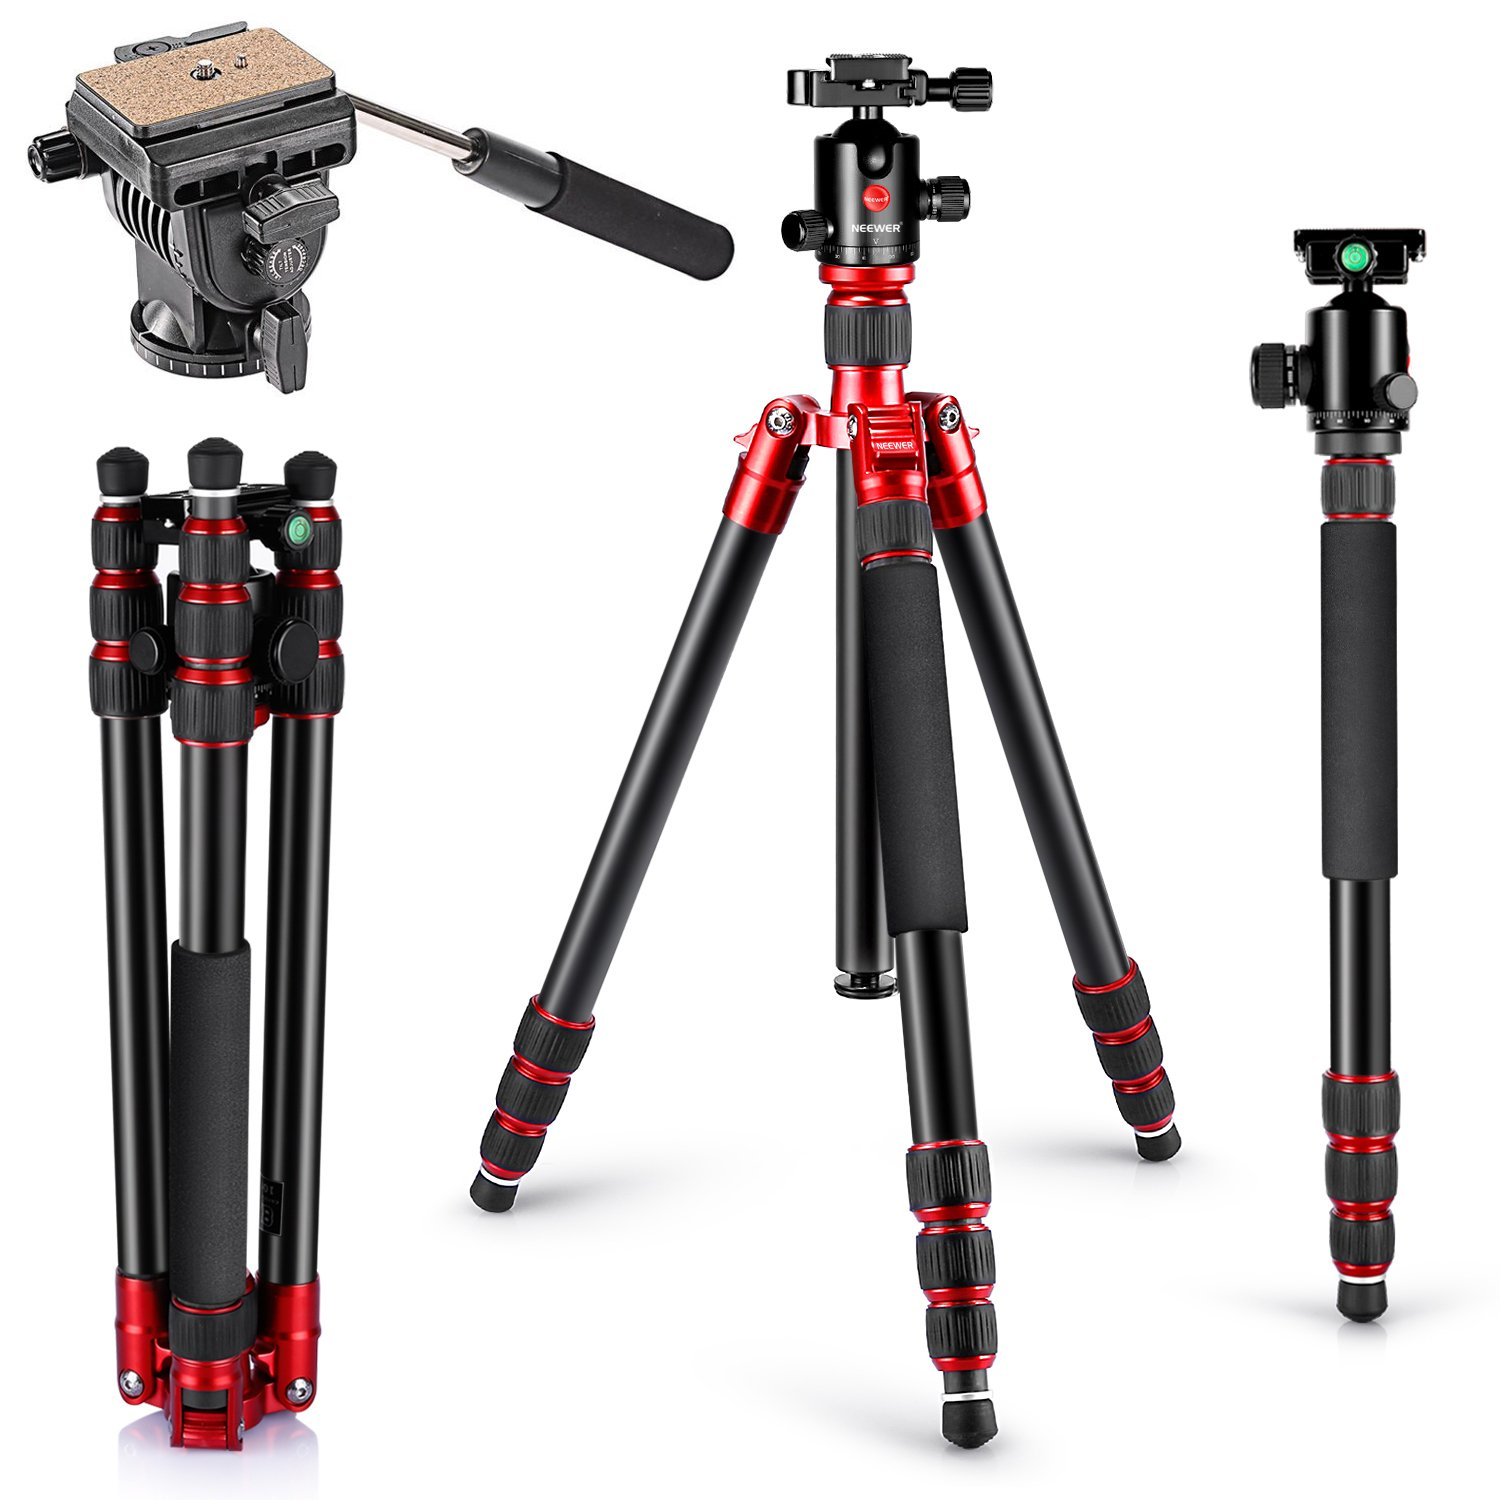 Neewer Aluminum Alloy Tripod Monopod 63''/160cm with 360 Degree Ball Head, Fluid Video Head, 1/4-inch Quick Shoe Plate for DSLR Camera, Video Camcorder up to 33 pounds/15 kilograms(Red) by Neewer